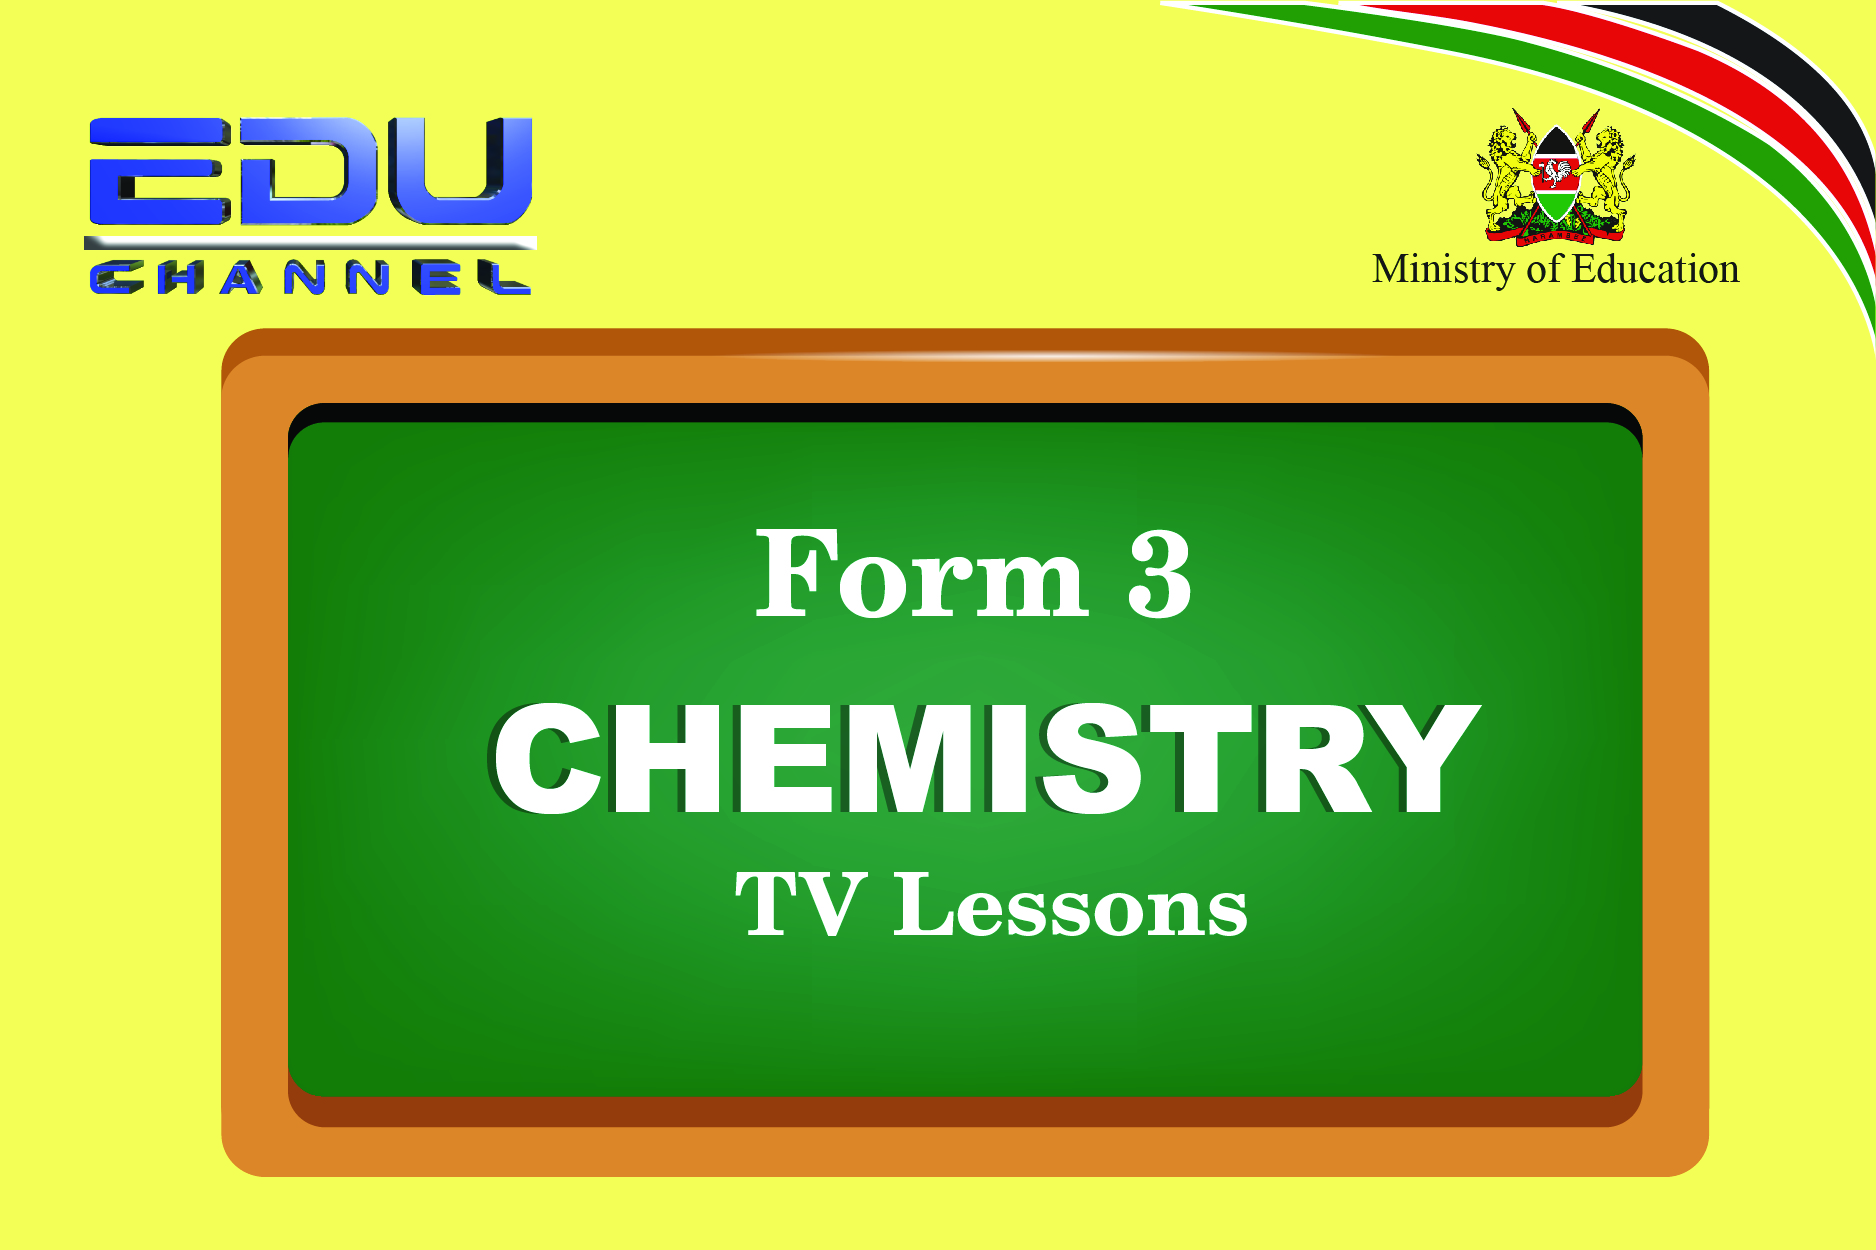 Form 3 Chemistry Lesson 2: The Mole,Formula and Chemical Equations